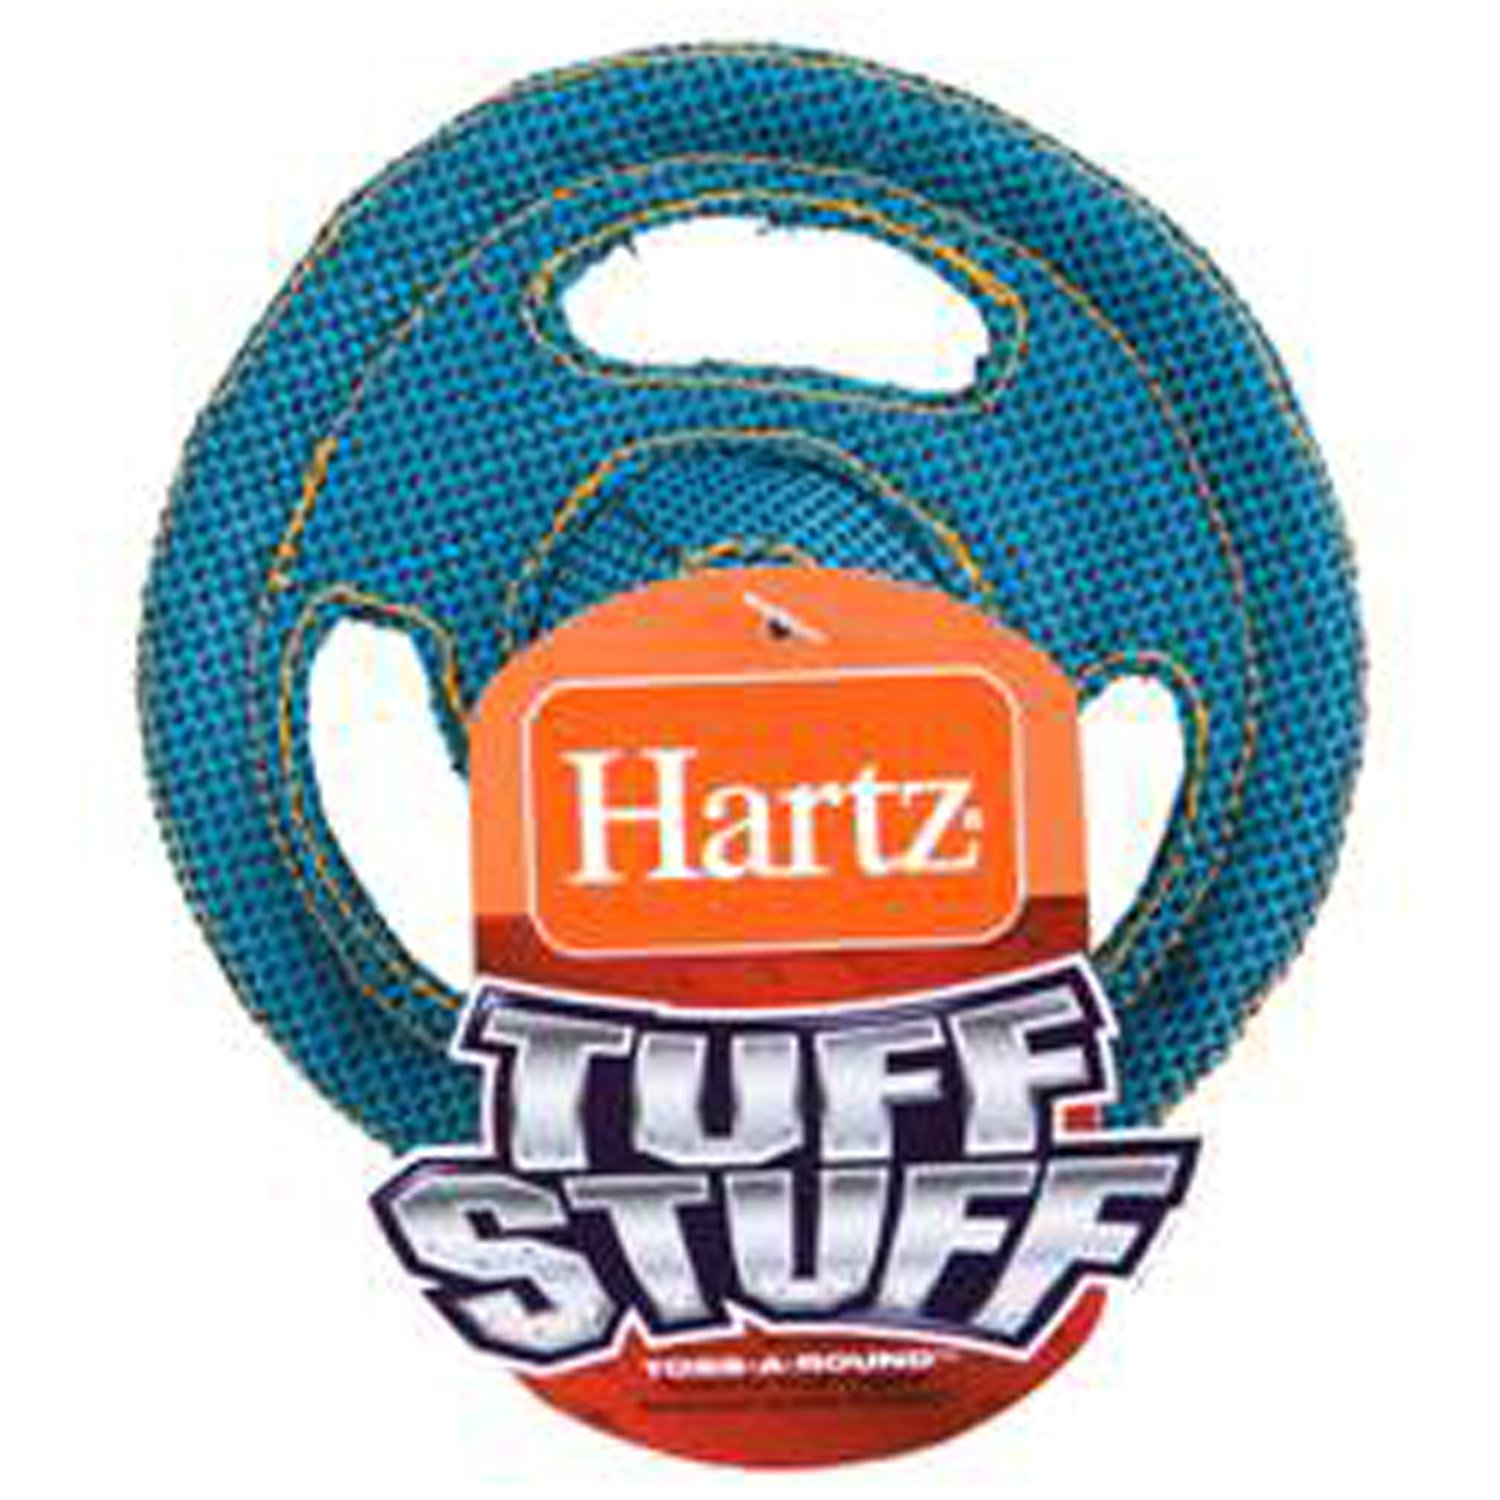 Hartz Tuff Stuff Flyer Dog Toy for Tiny Dogs, Colors May Vary enfamil infant formula packaging may vary